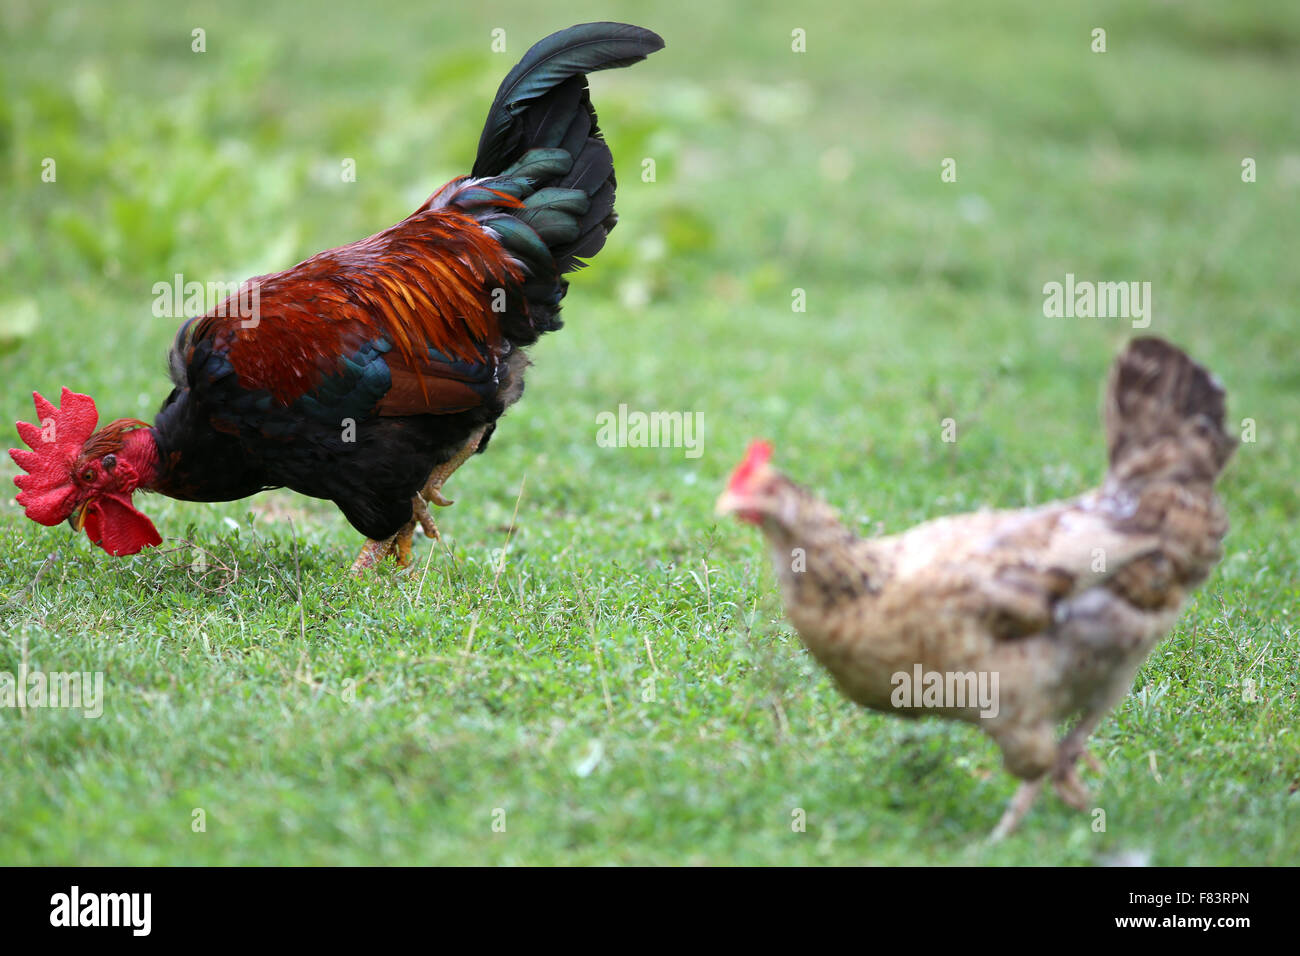 rooster wing stock photos u0026 rooster wing stock images alamy